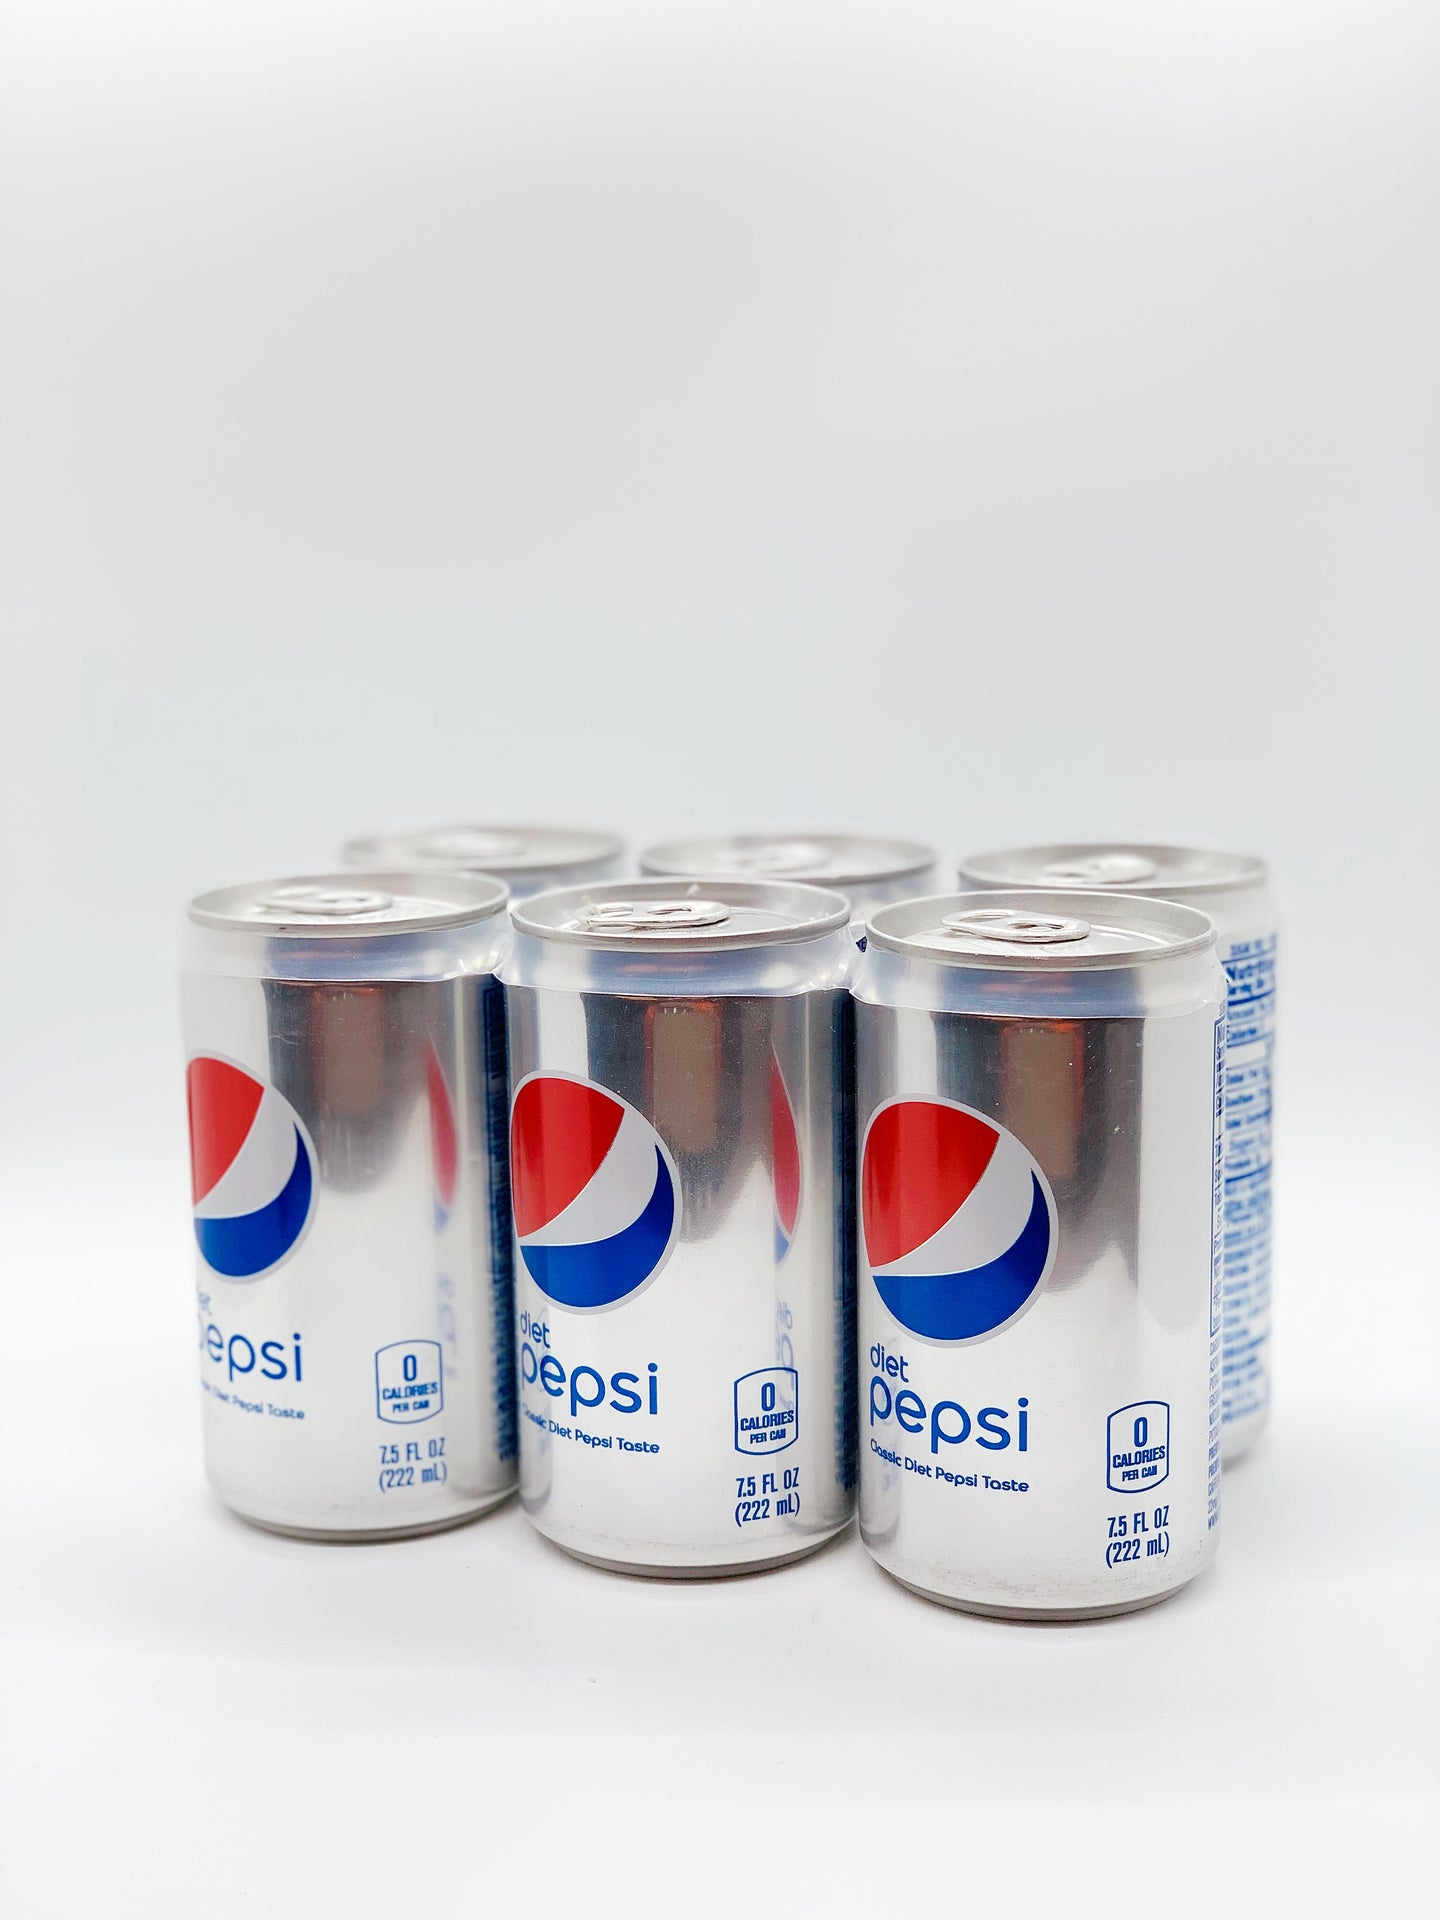 Pepsi Minis, 7.5 Oz Cans, 24 Pack